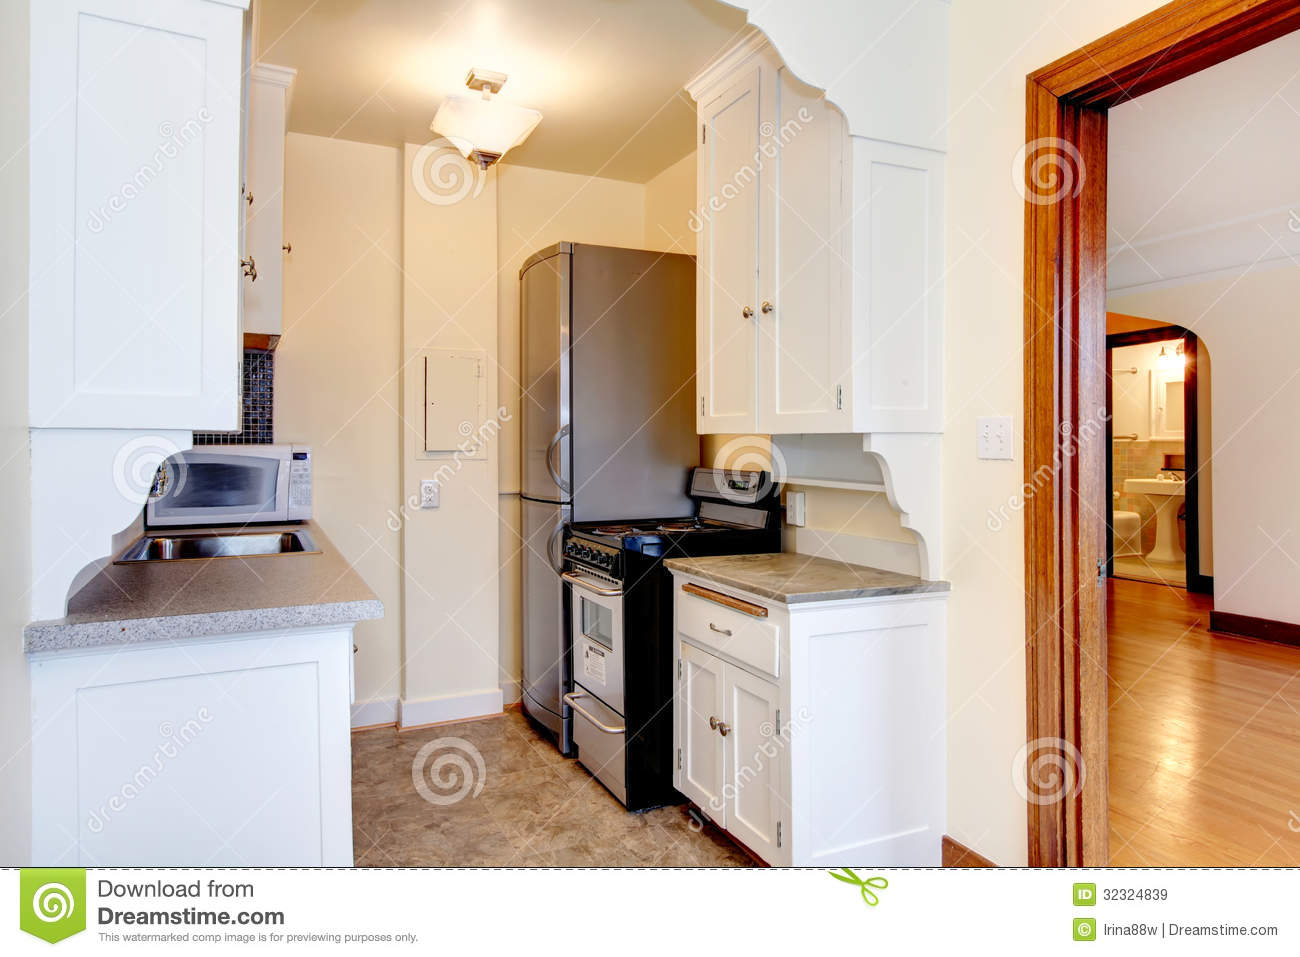 White Old Small Apartment Kitchen Stock Image - Image of ...